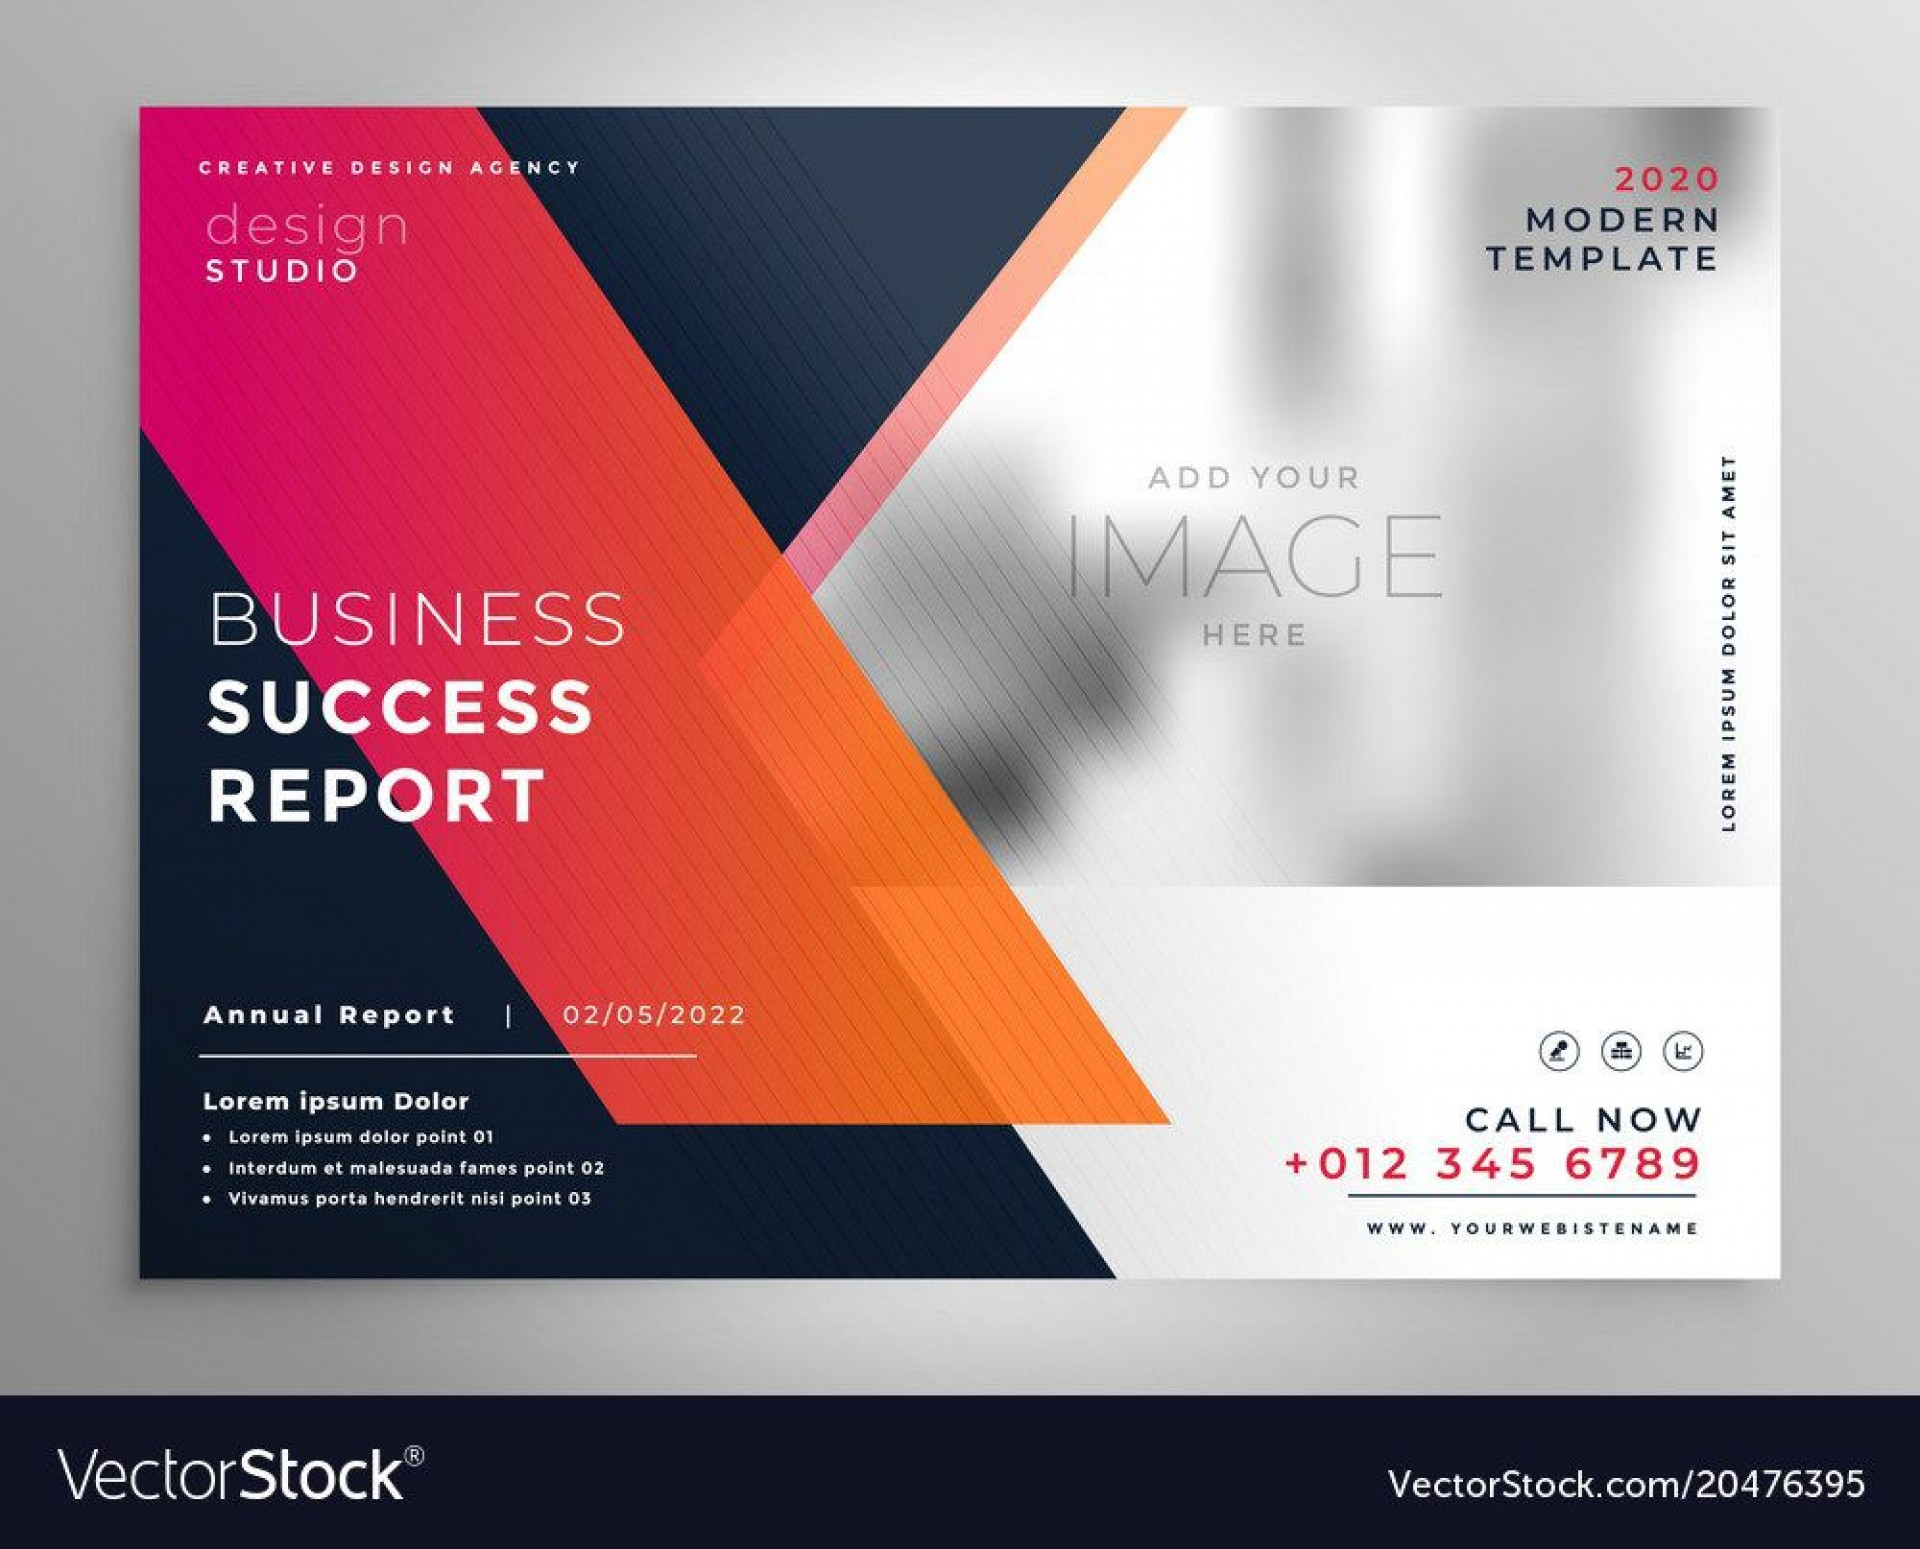 005 Stirring Free Flyer Design Template High Def  Indesign For Word Microsoft1920